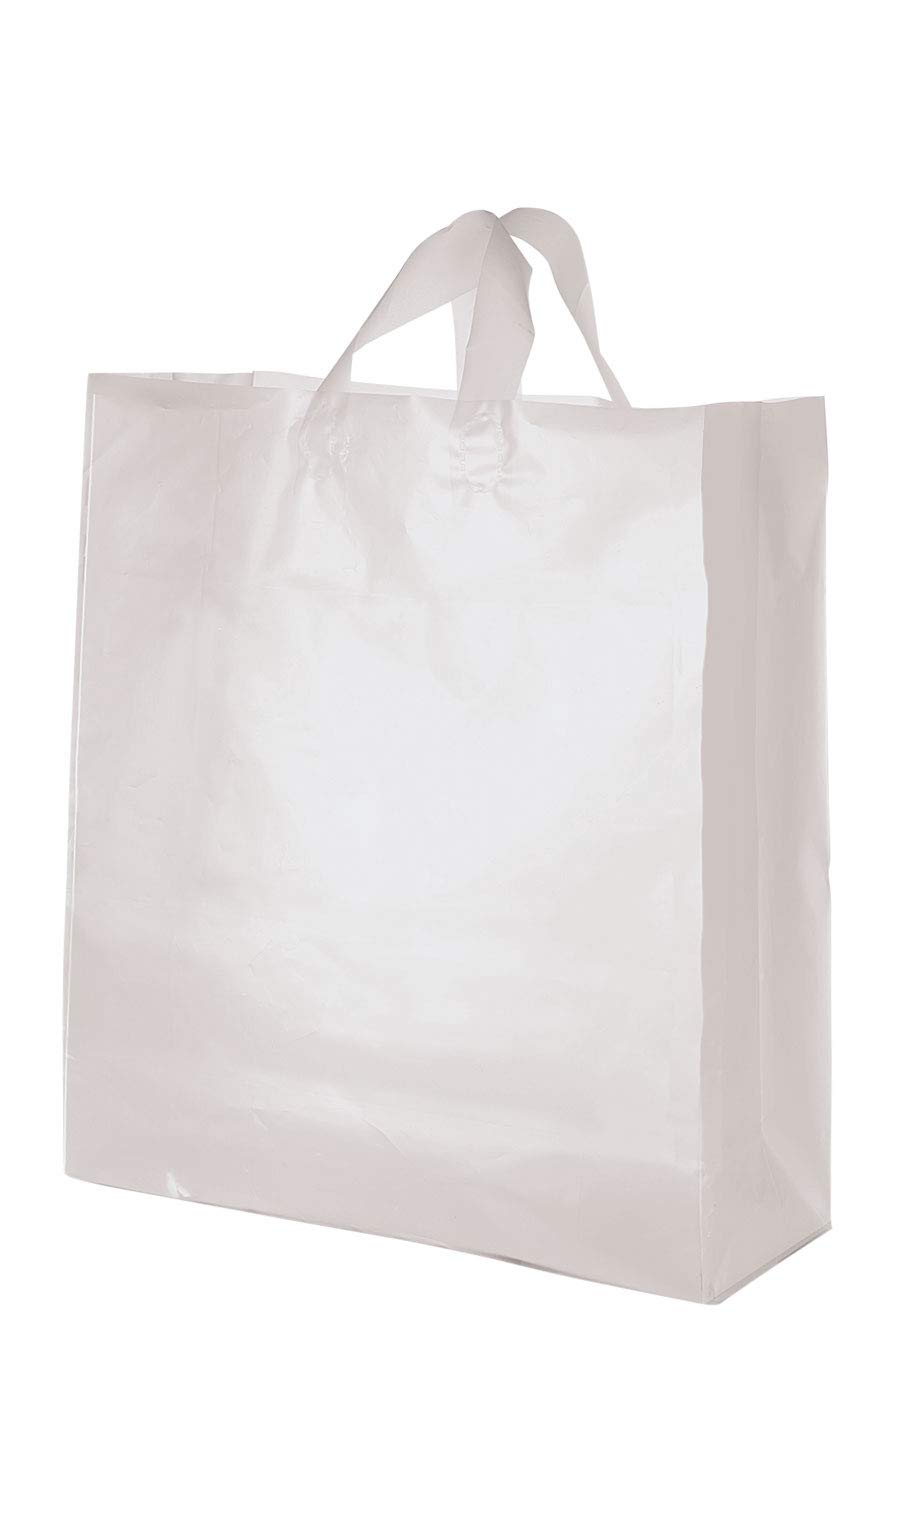 SSWBasics Jumbo Clear Frosted Plastic Shopping Bags - 16'' x 6'' x 19'' - Case of 100